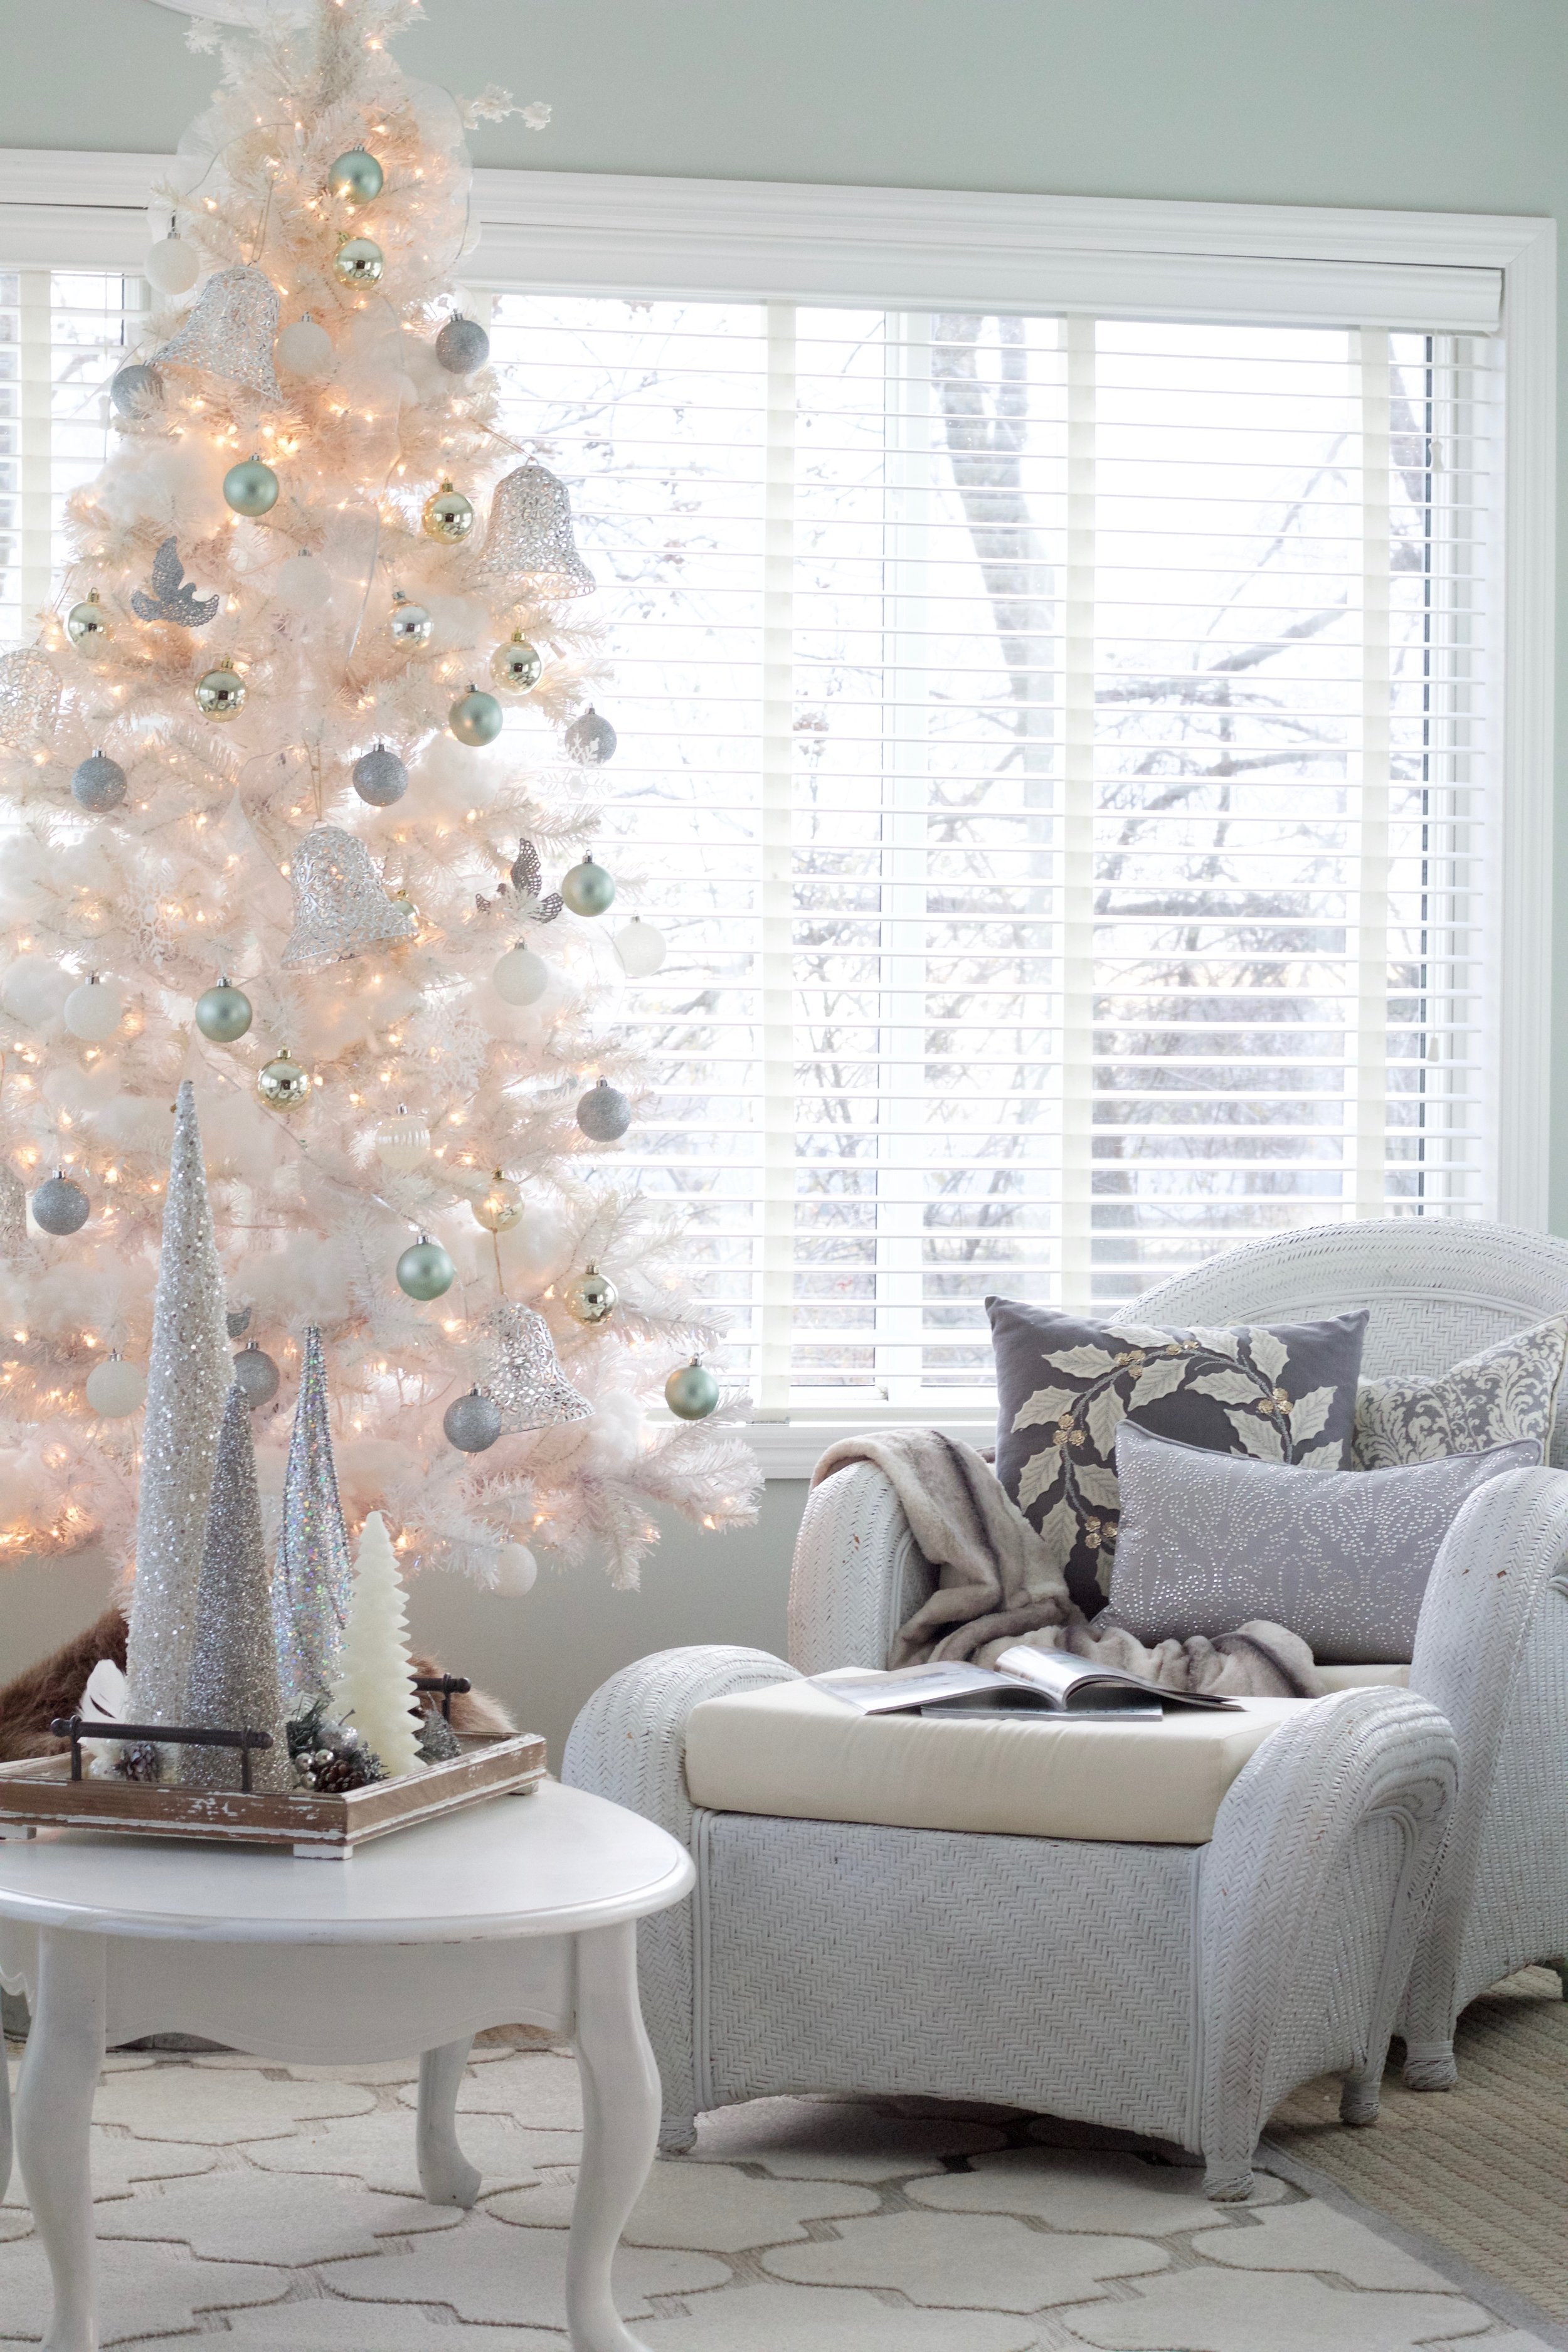 Christmas Home Tour 2017 - Styled With Lace